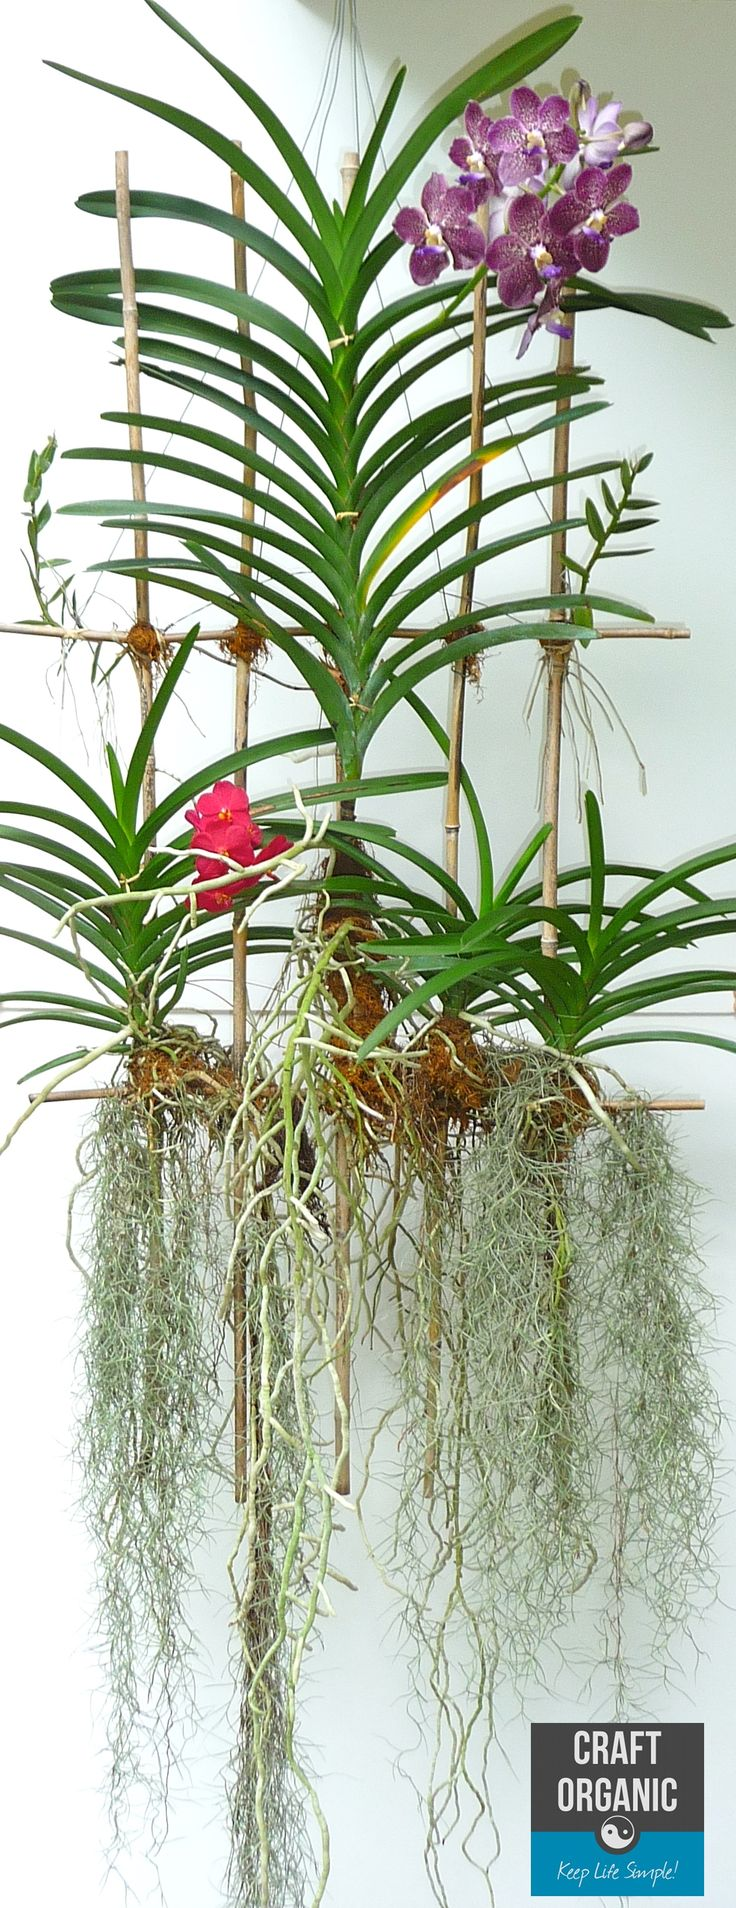 #Vanda on Bamboo Lattice - Revisited 1.5 years later #orchids